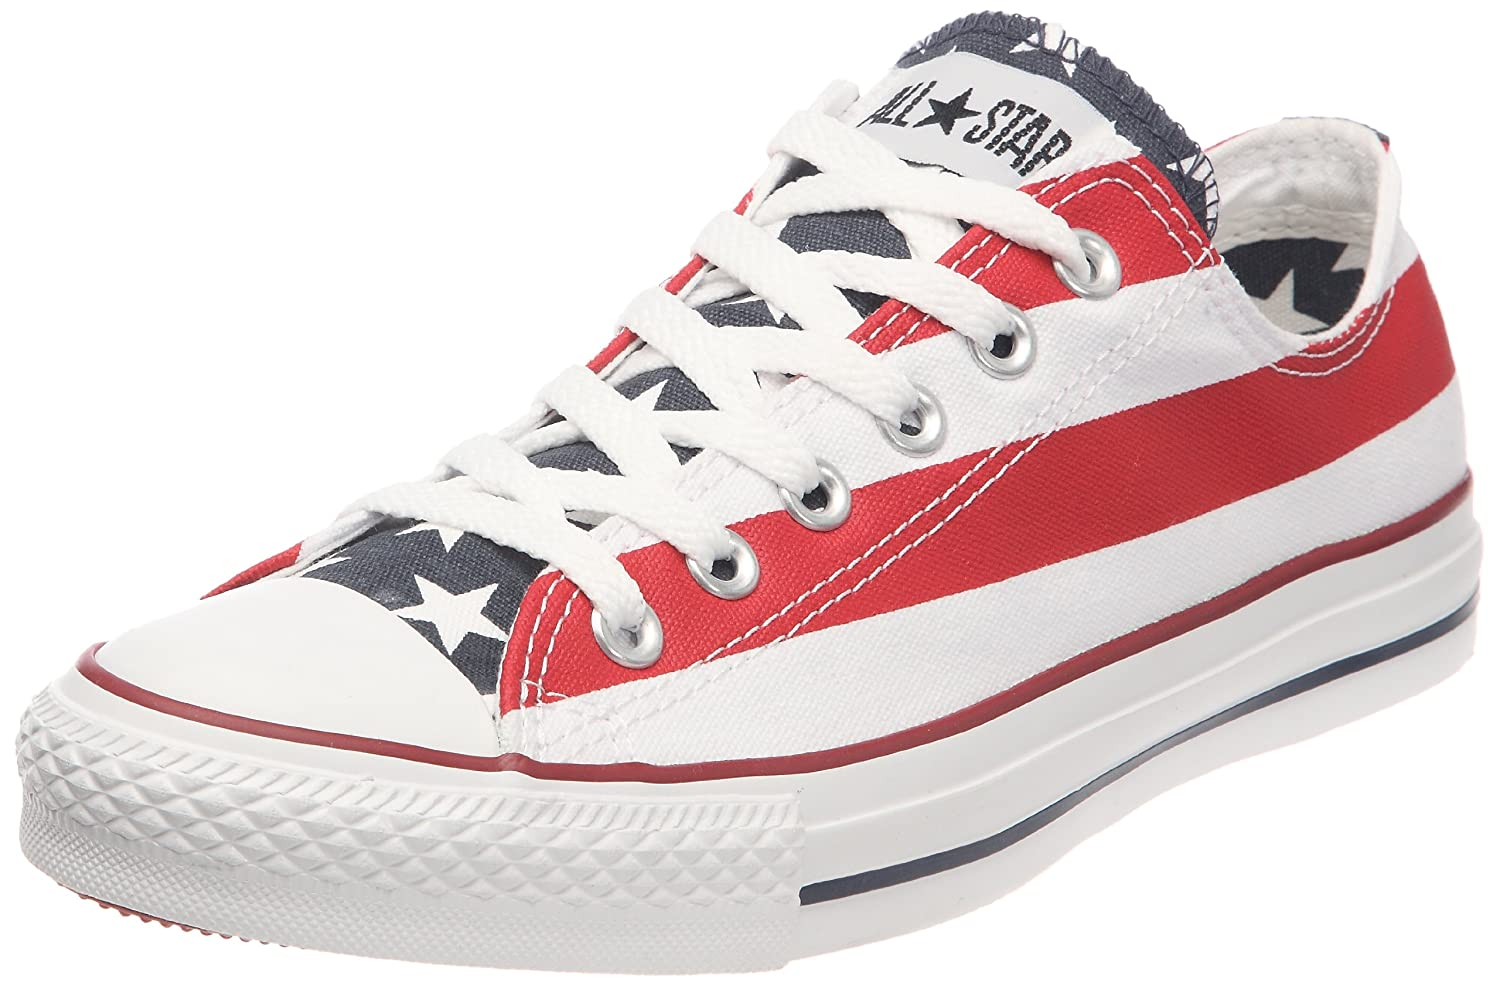 Converse Unisex Classic Chuck Taylor All Star Low Top Sneakers B004OX3JOI 7.5 B(M) US Women / 5.5 D(M) US Men|White/Blue/Red